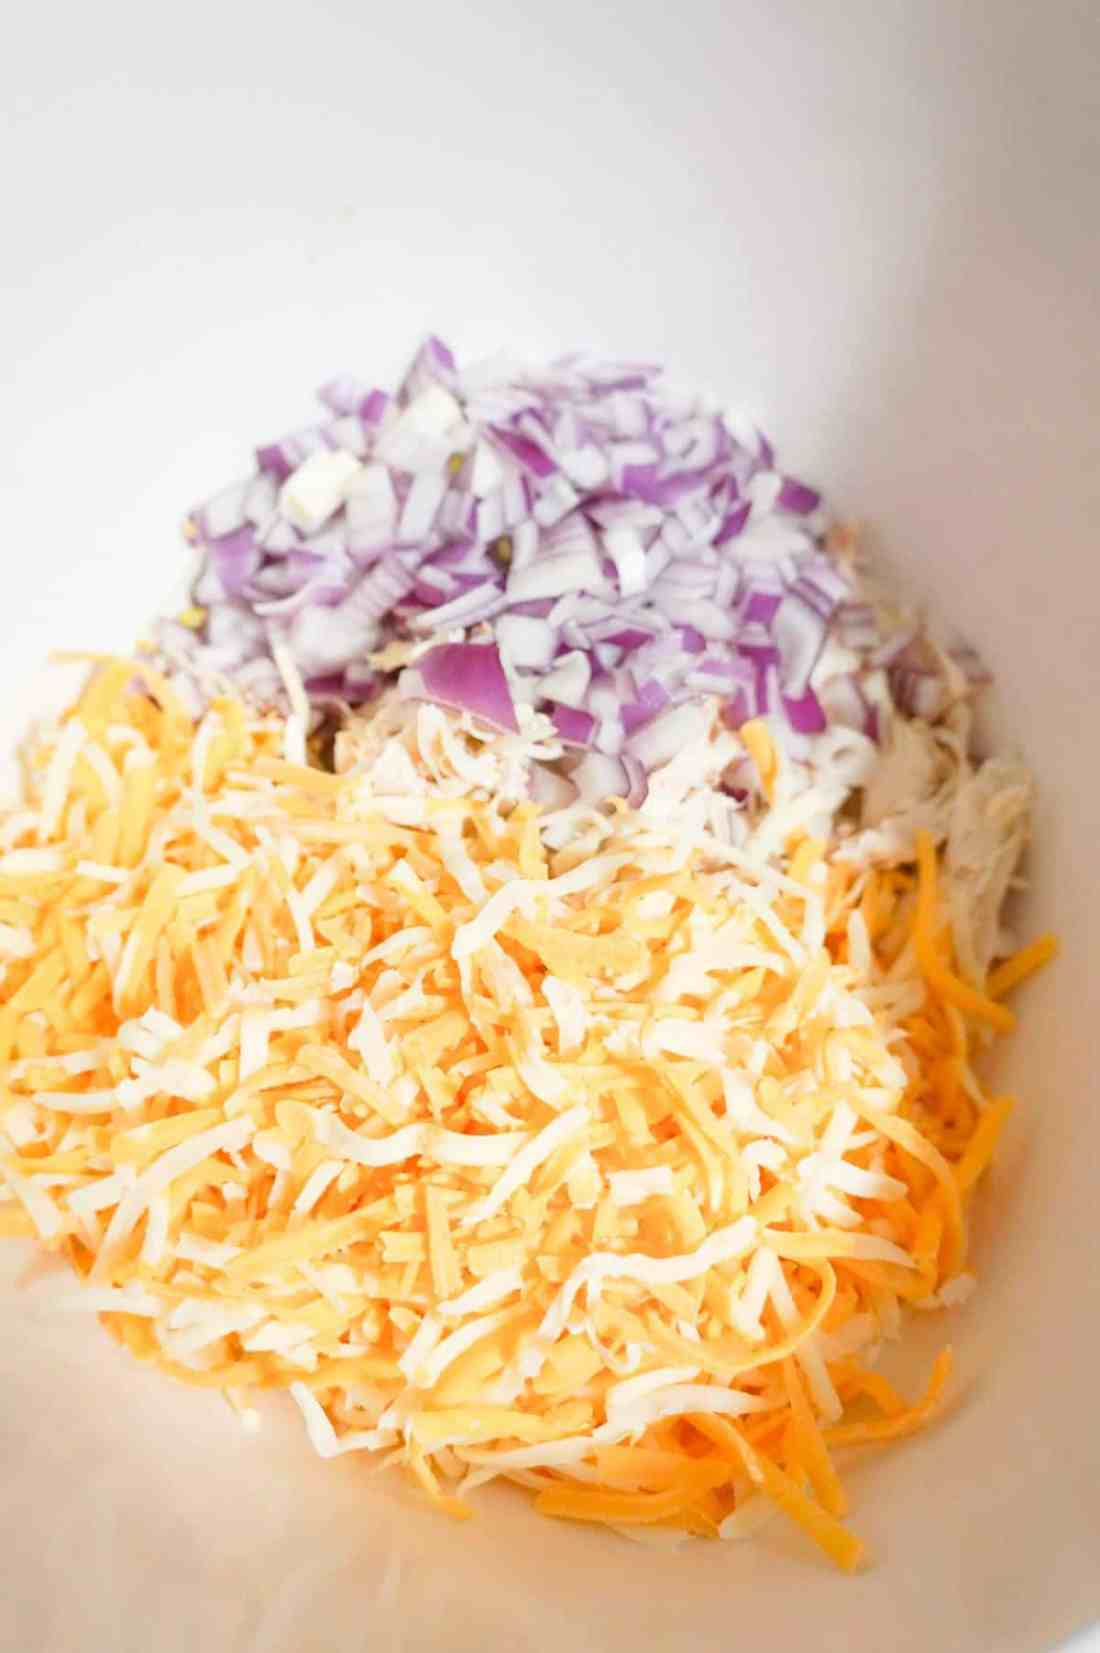 shredded cheese, diced red onion and shredded chicken in a mixing bowl